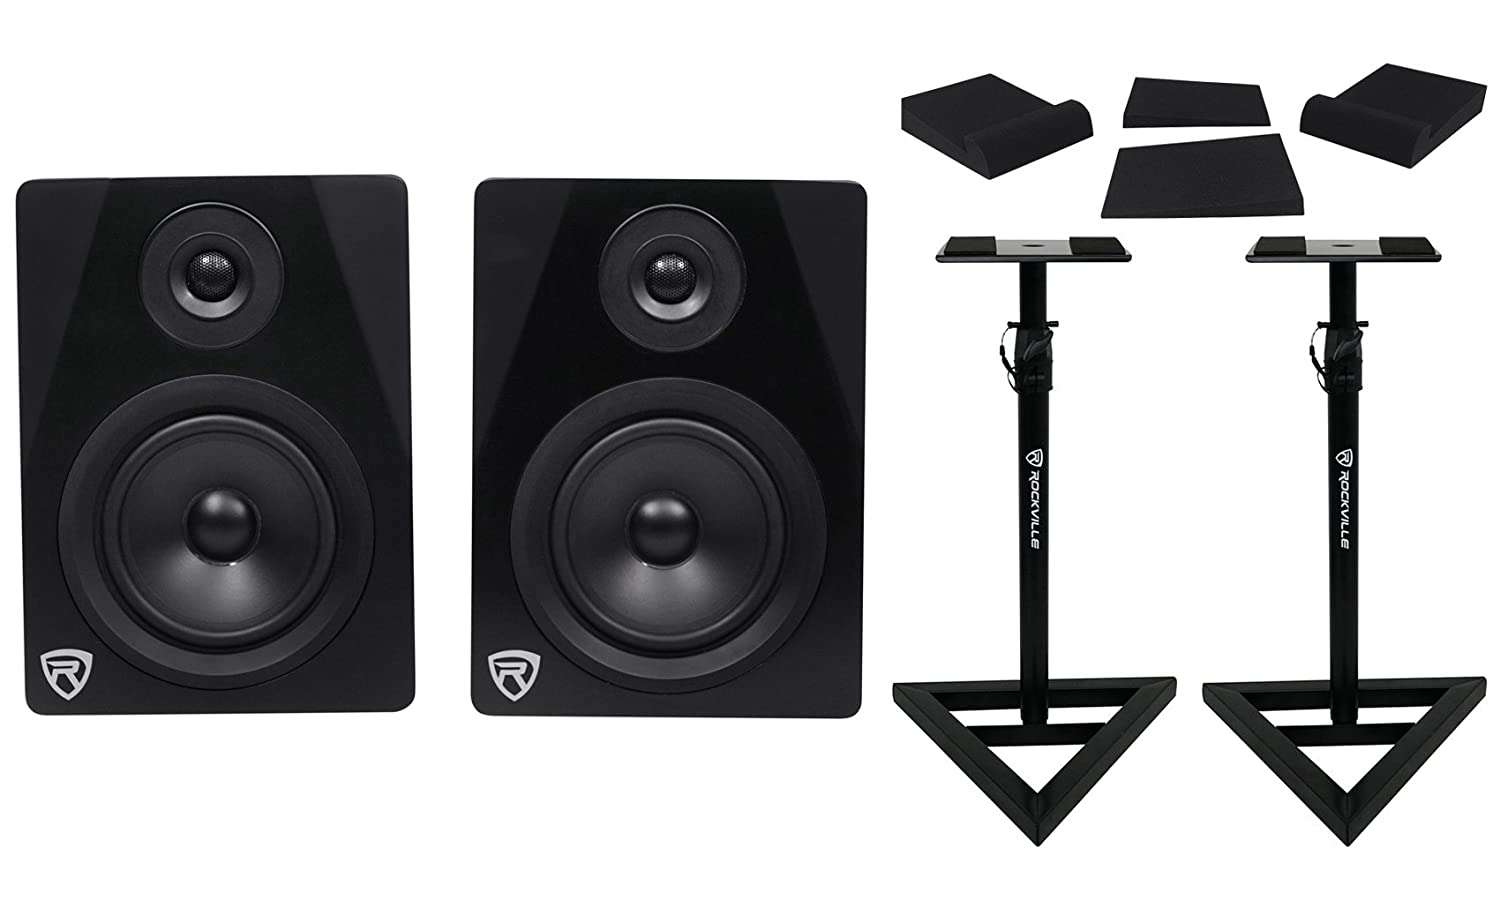 Pair Rockville APM5B 5.25' 2-Way 250W Powered USB Studio Monitors Bundle with Stands and Pads APM5B+RVSM1+RRS190S PACK